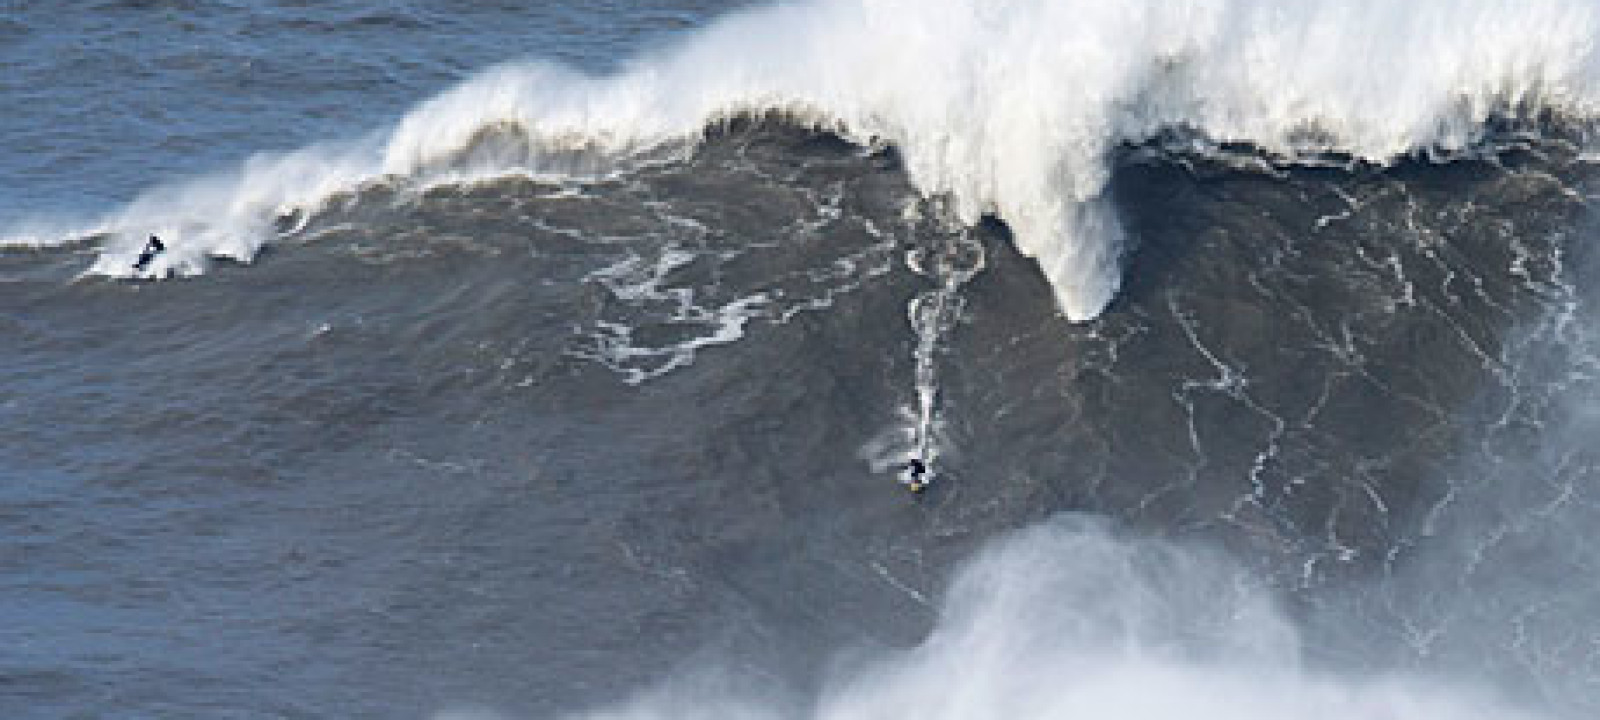 Andrew Cotton rides an 80ft wave